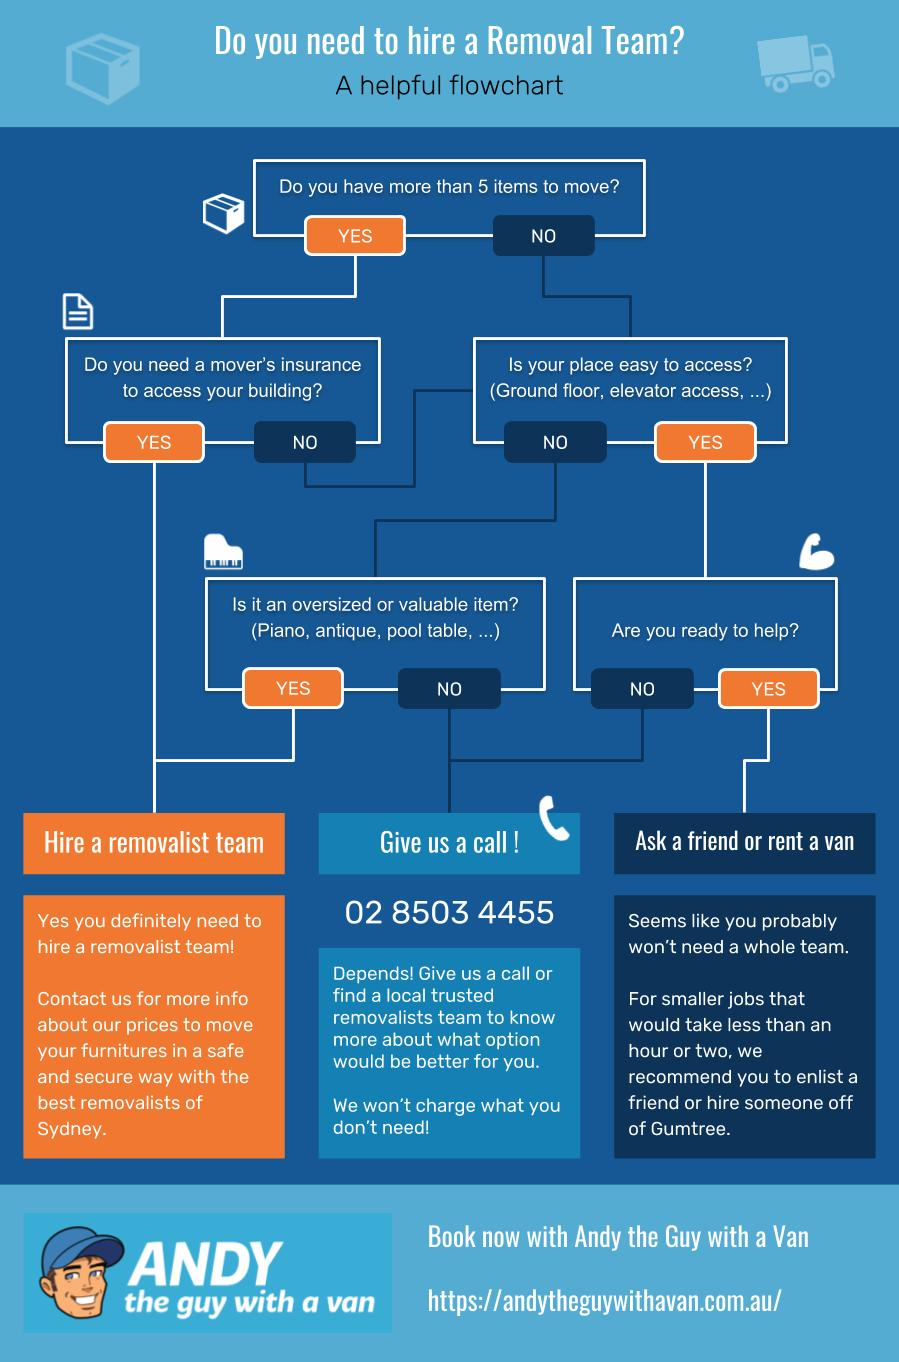 Do you need to hire a Removal Team - Infographic - Andy the guy